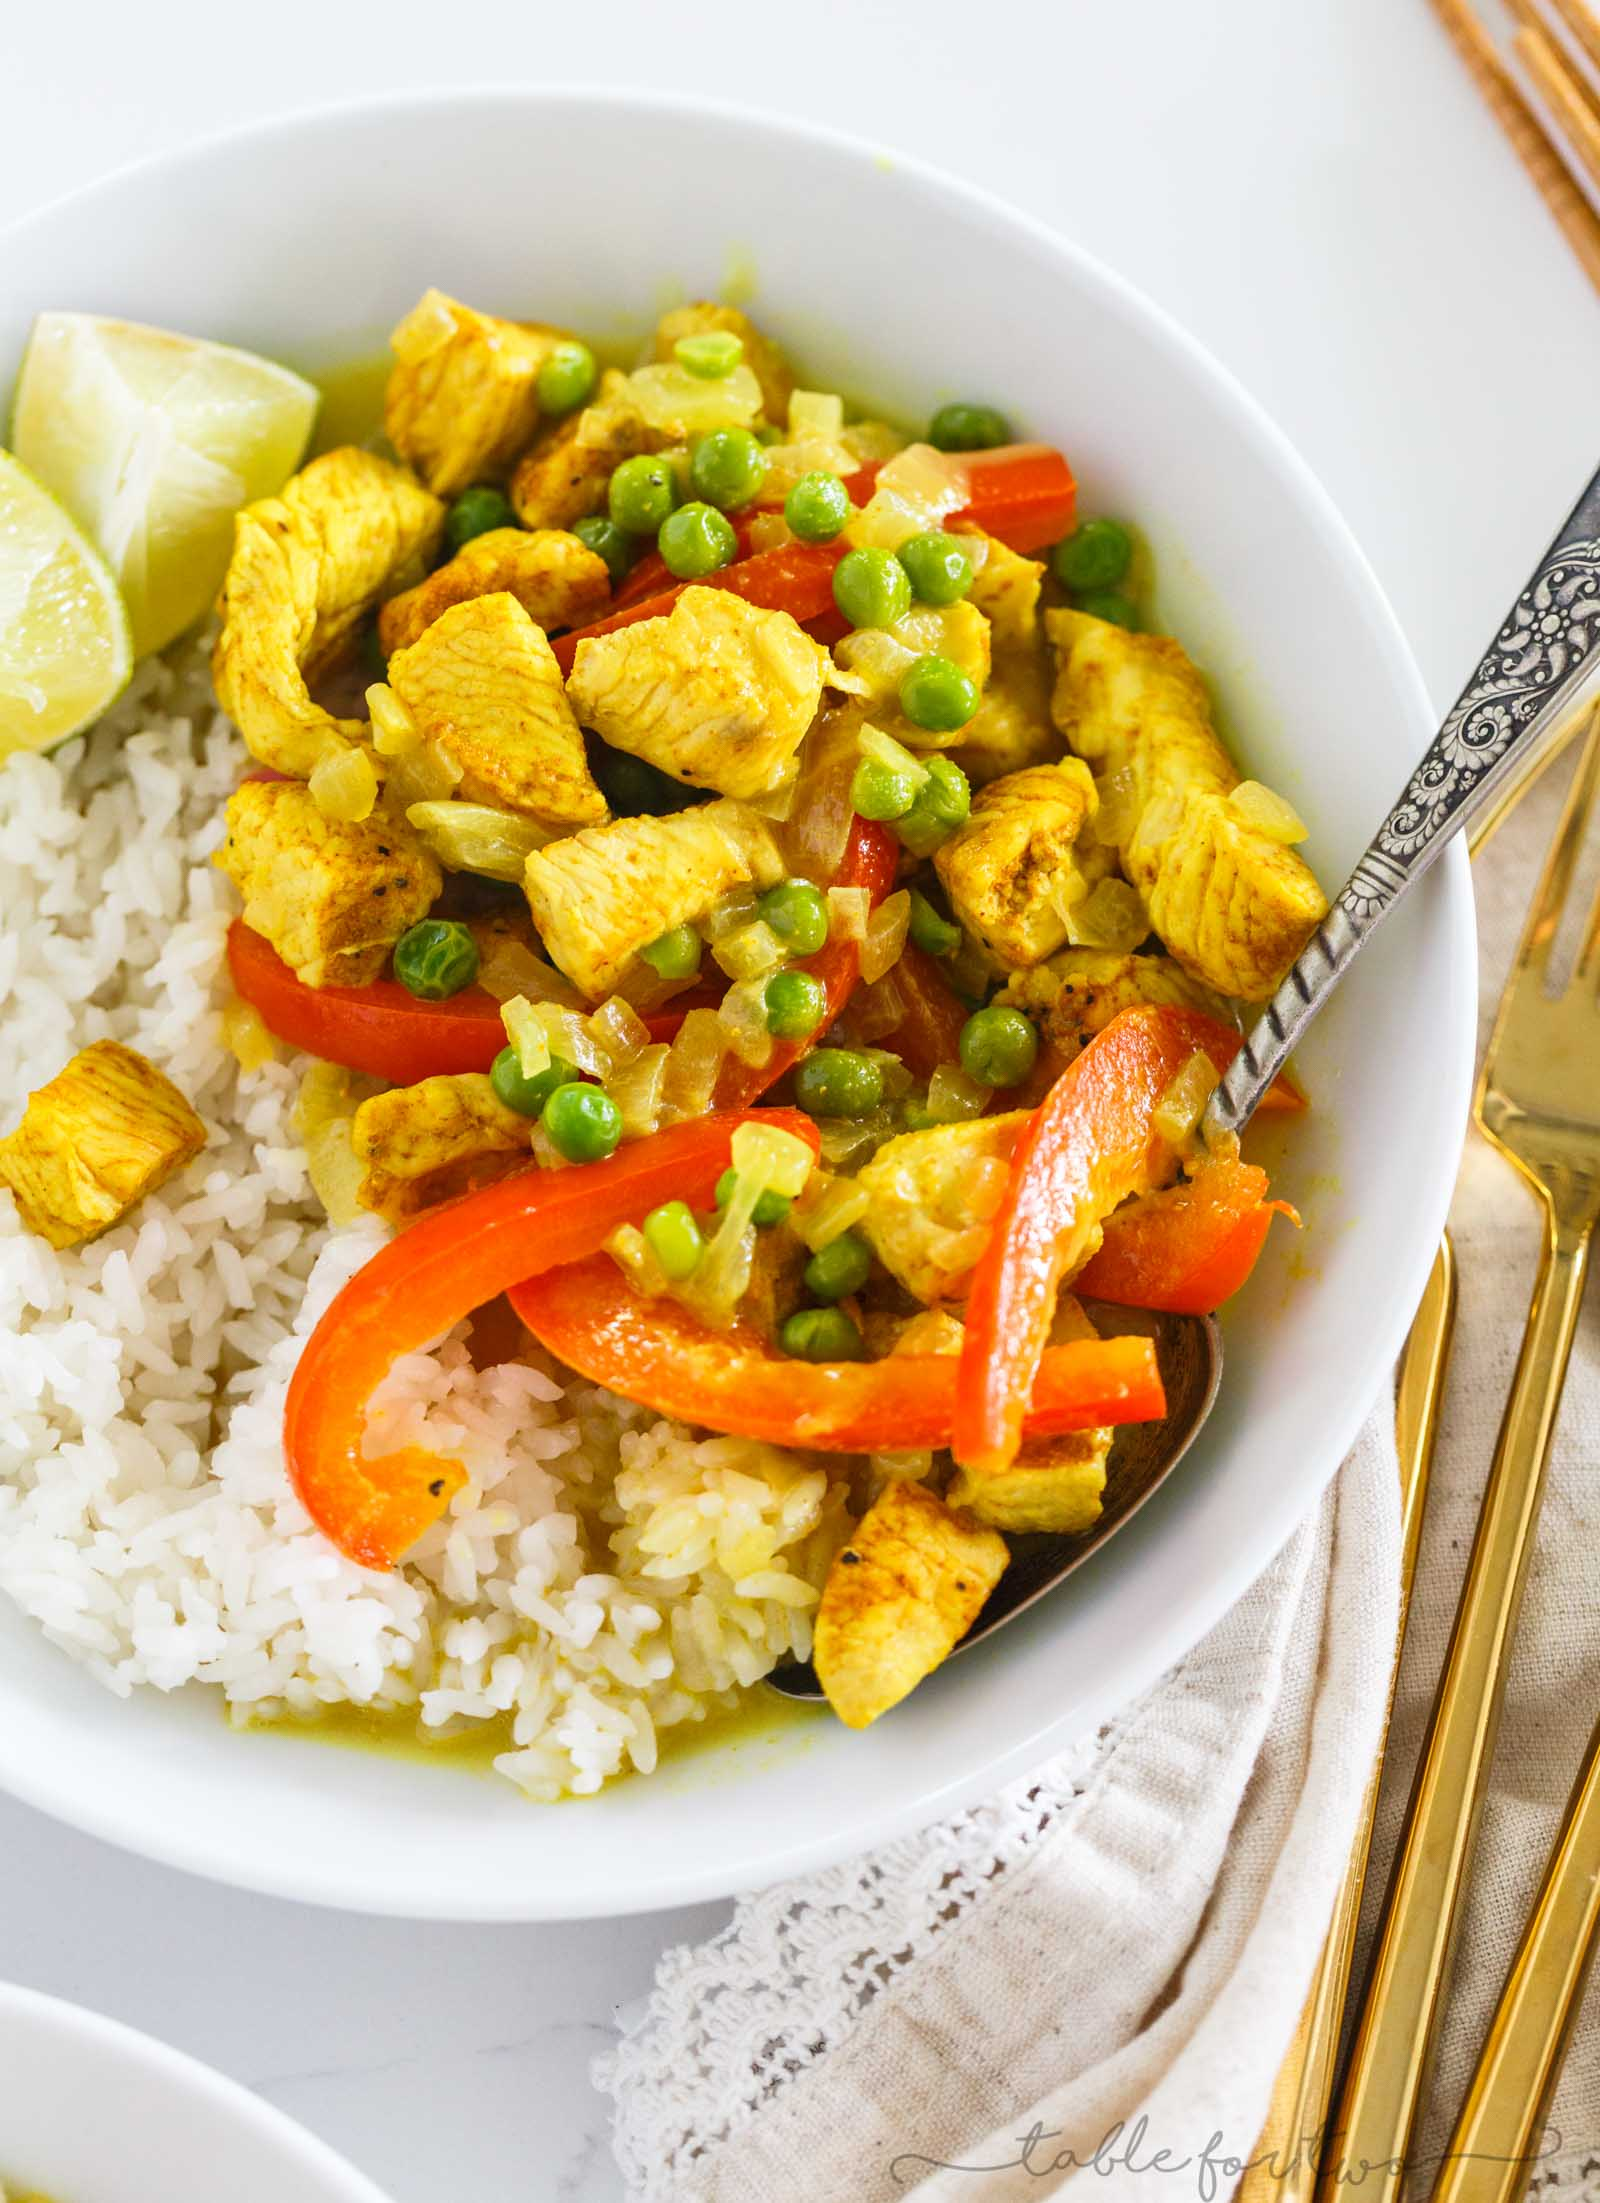 This green curry and coconut rice bowl is a delightfully flavorful easy weeknight meal or for meal prep. Simple to throw together yet not lacking in flavor one bit!